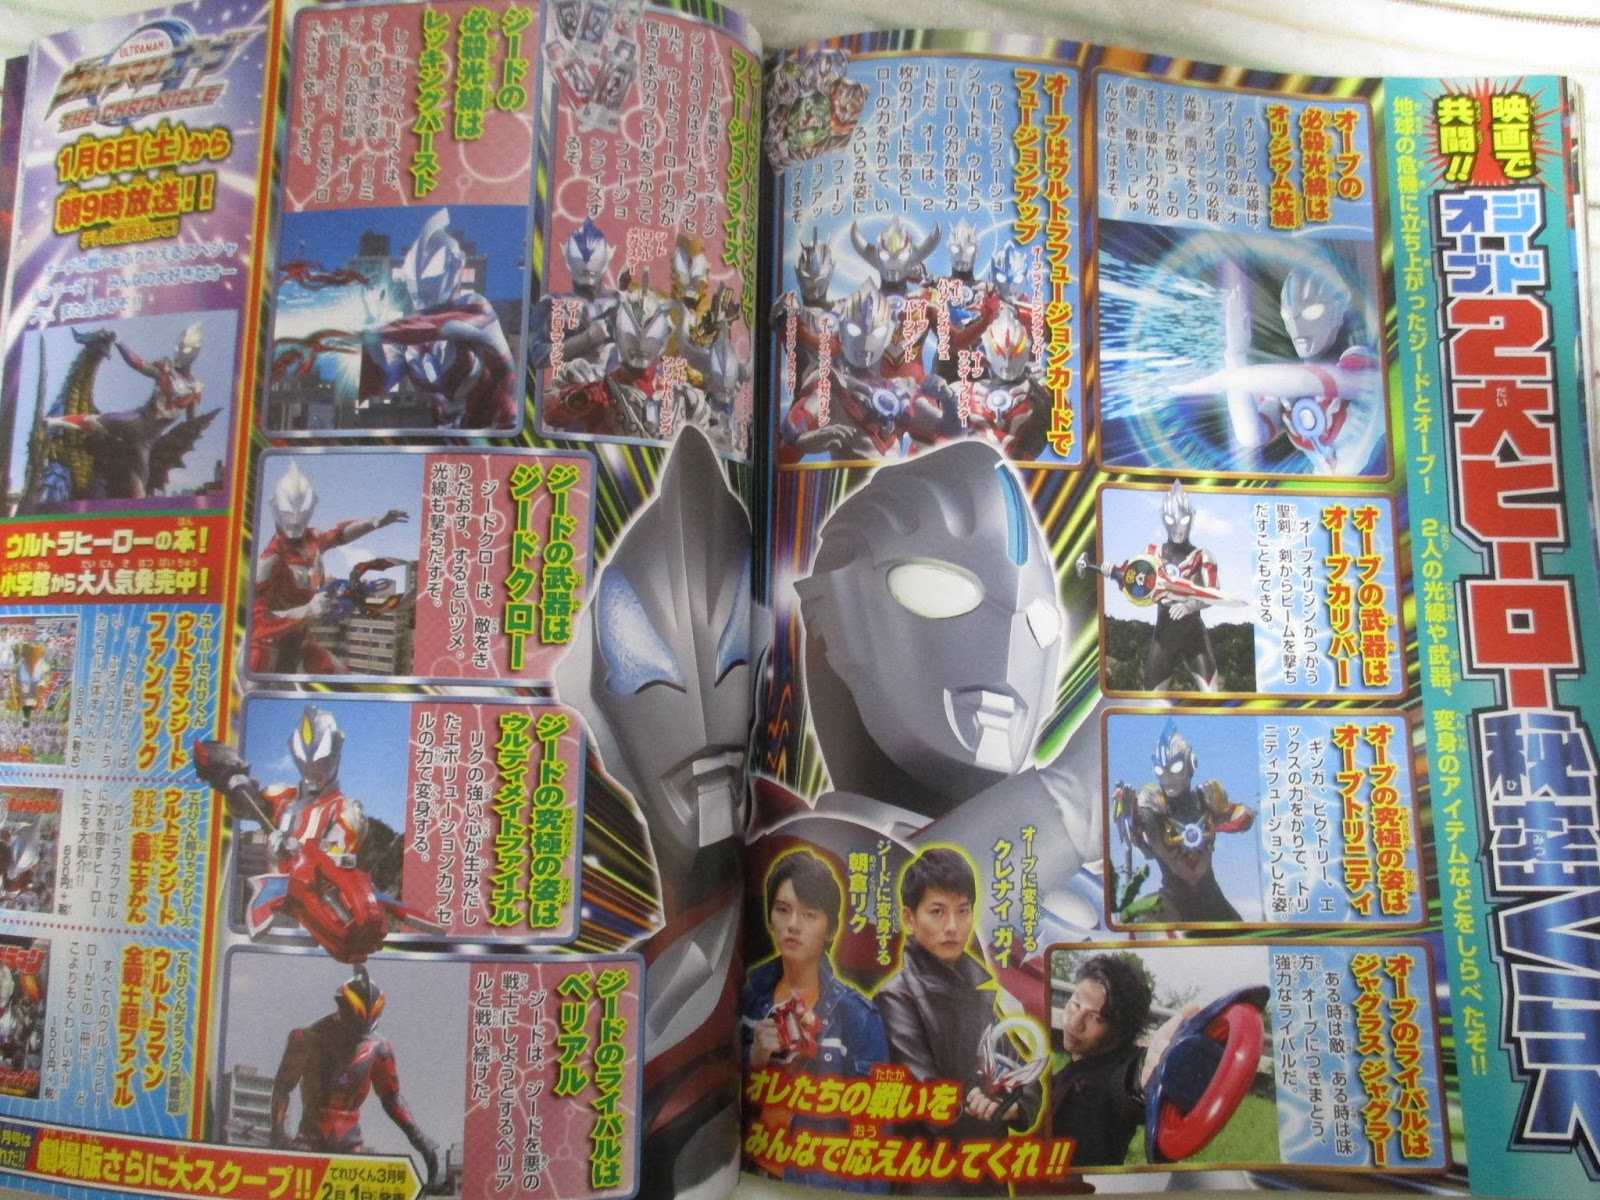 Ultraman Geed Tsunaguze Negai Movie Updates Spinner Iron Hiro And His Fellow Ultra Heroes Showing Their Powers Stay Tune For More